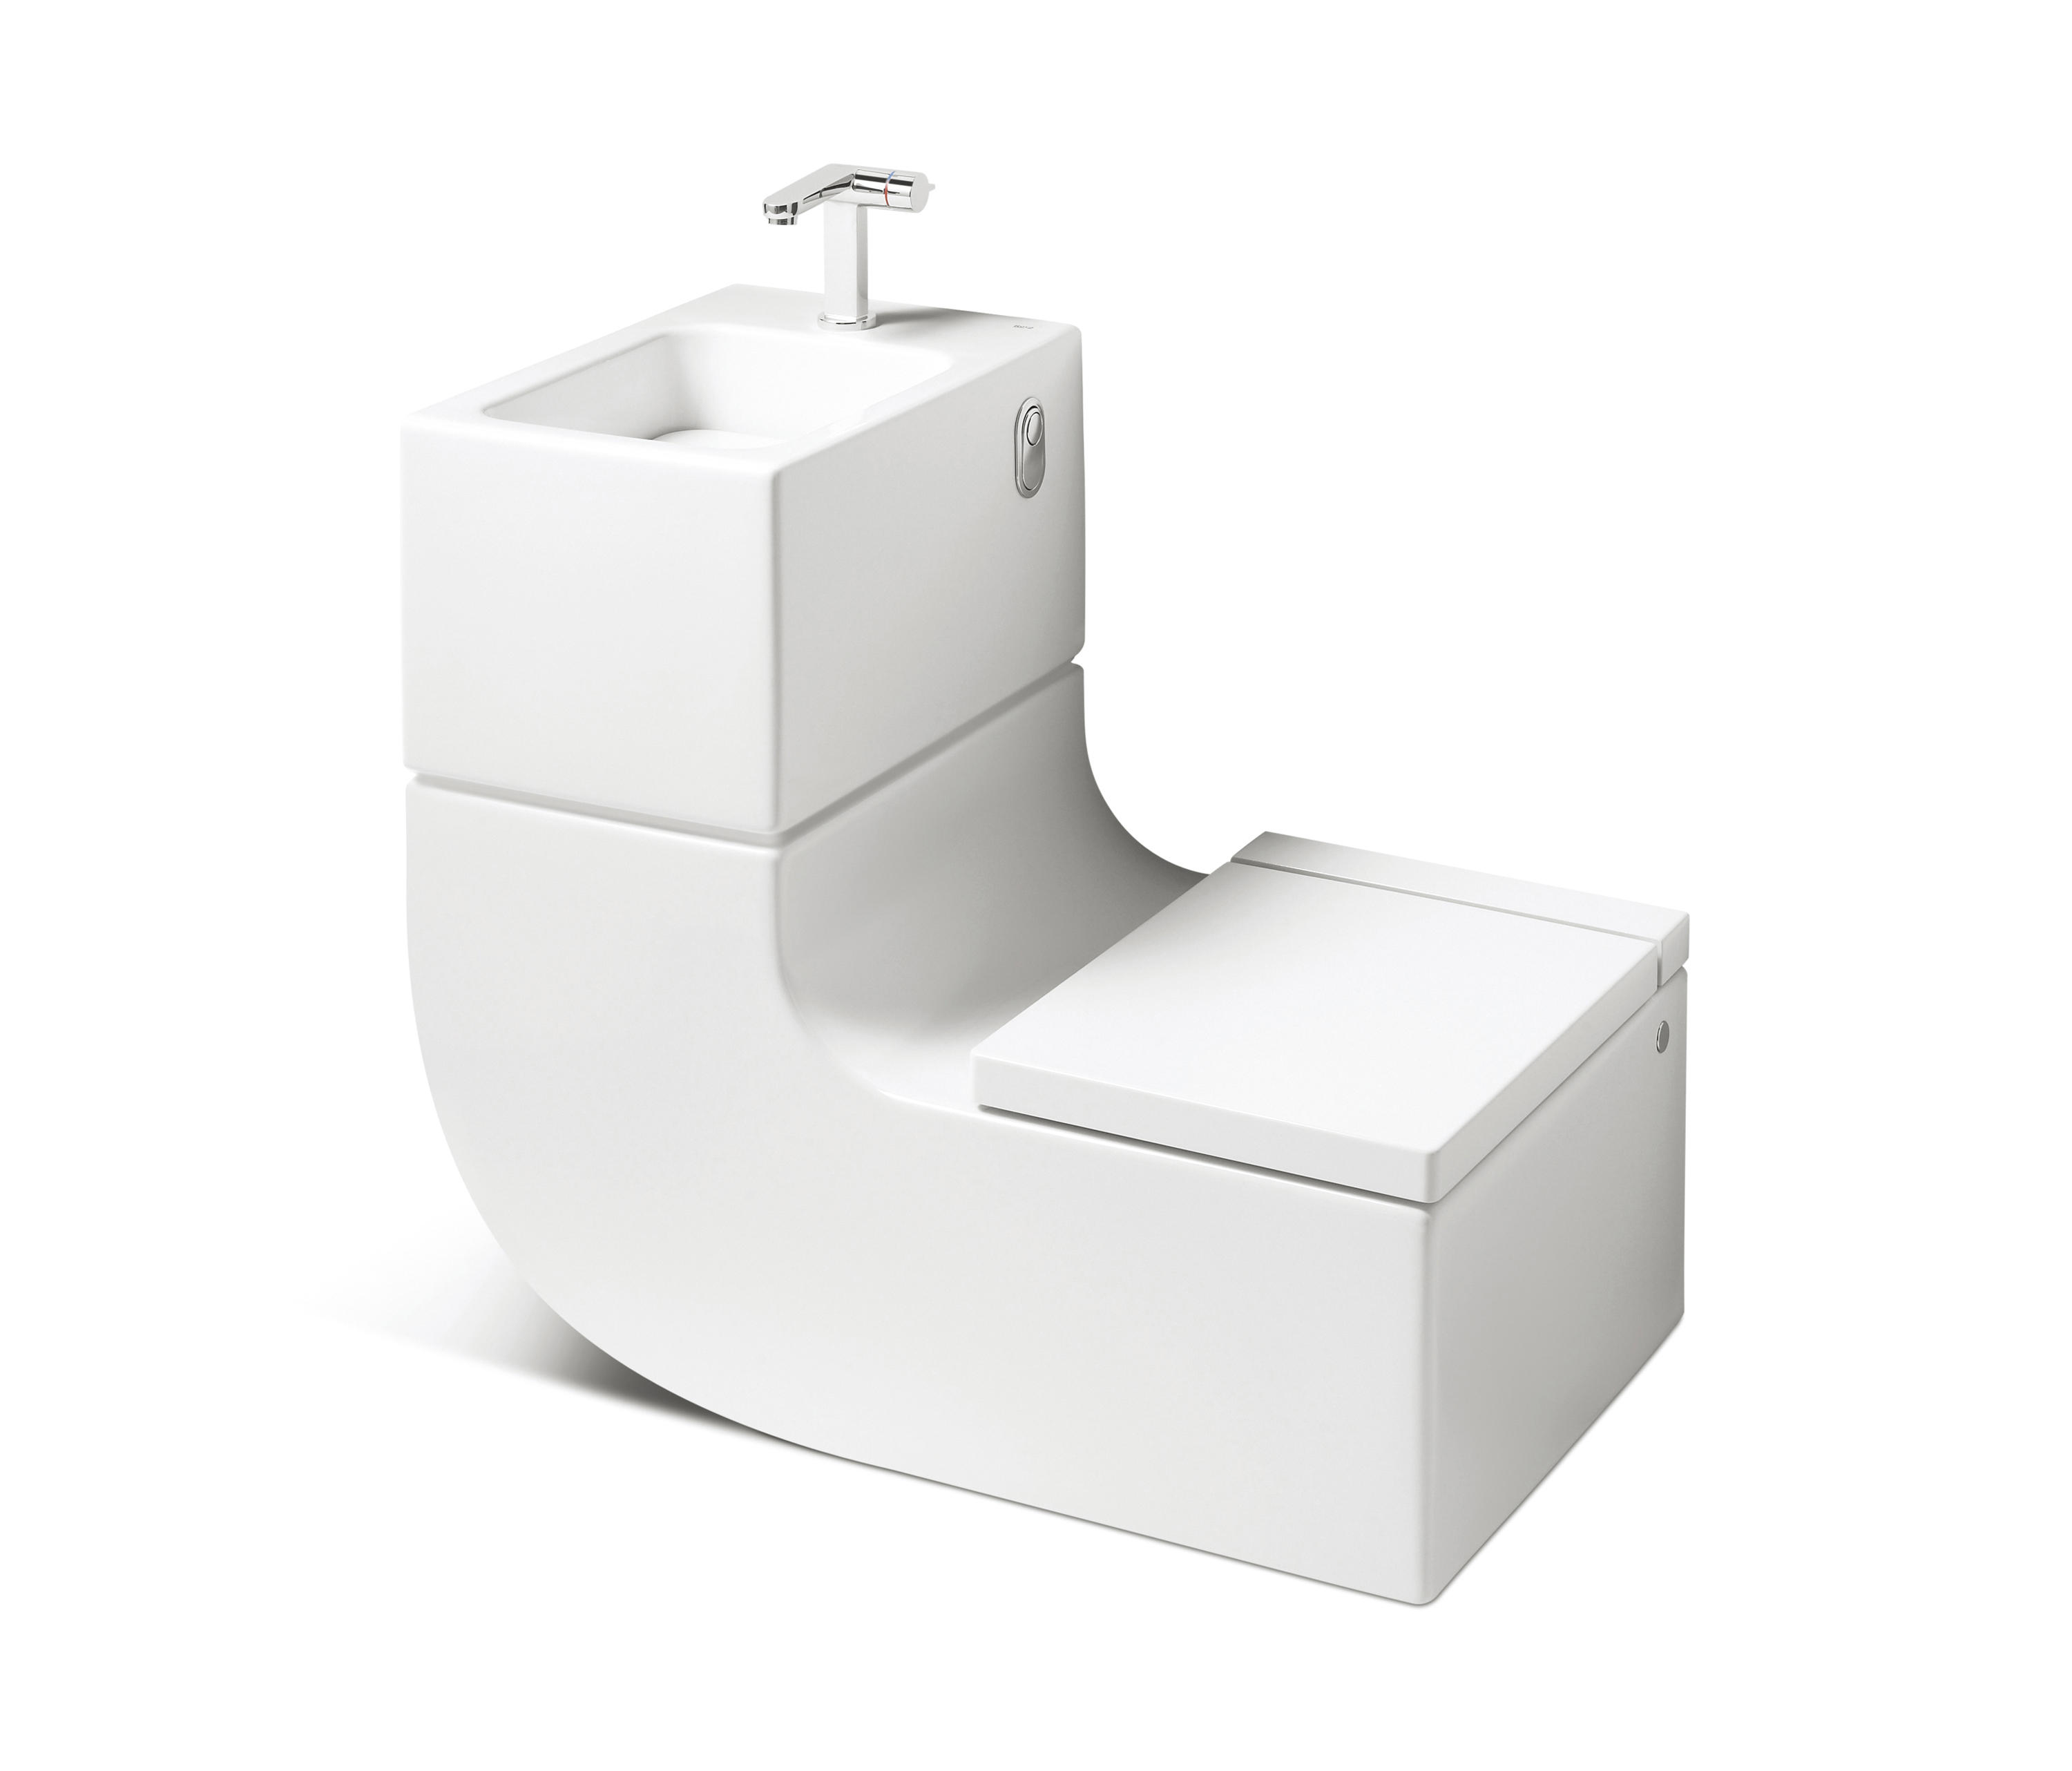 ww washbasin wc by roca toilets - Roca Wash Basin